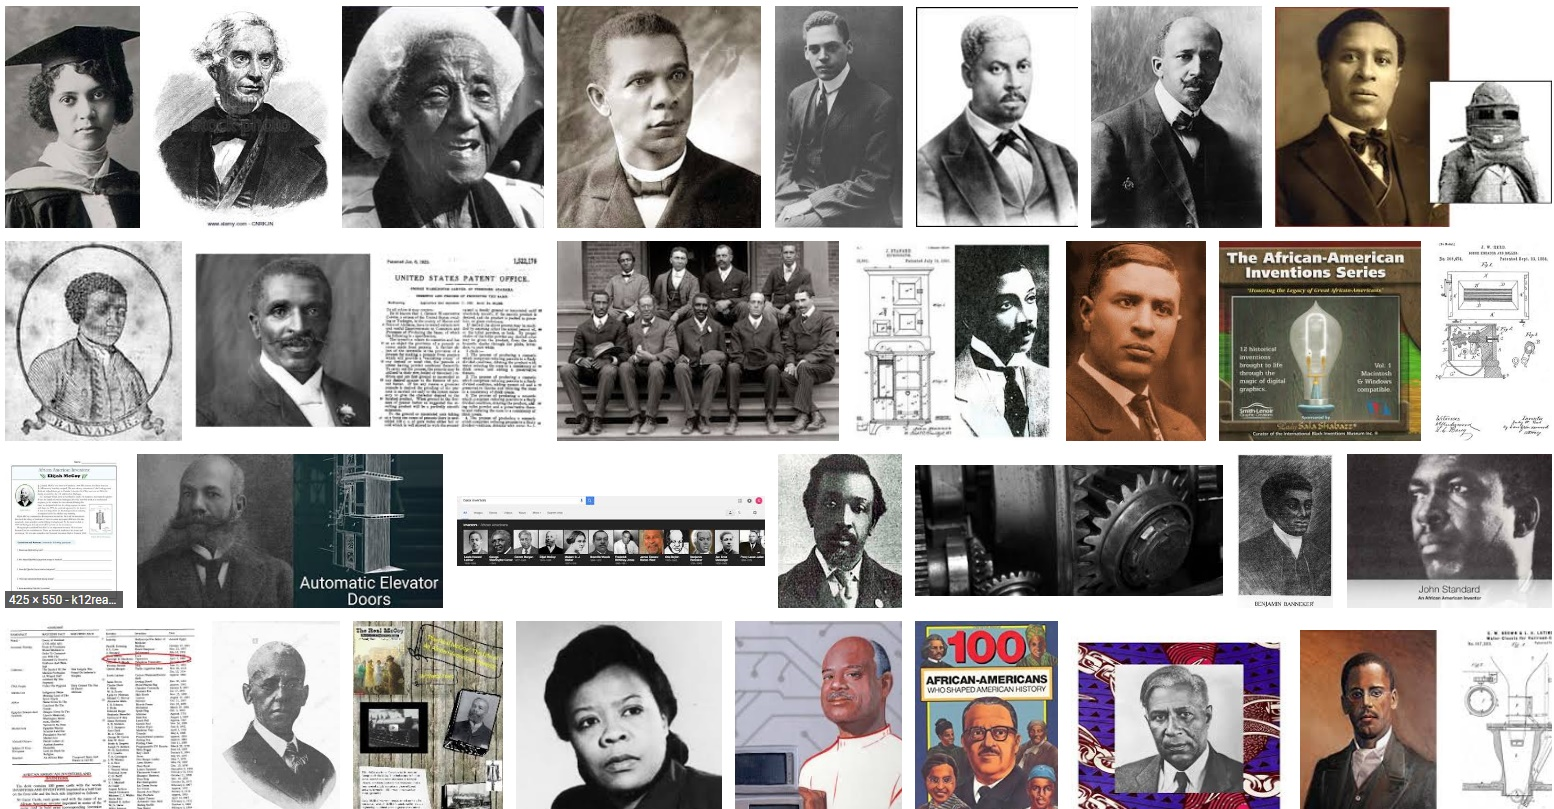 11 African American Inventors Who Changed The World The